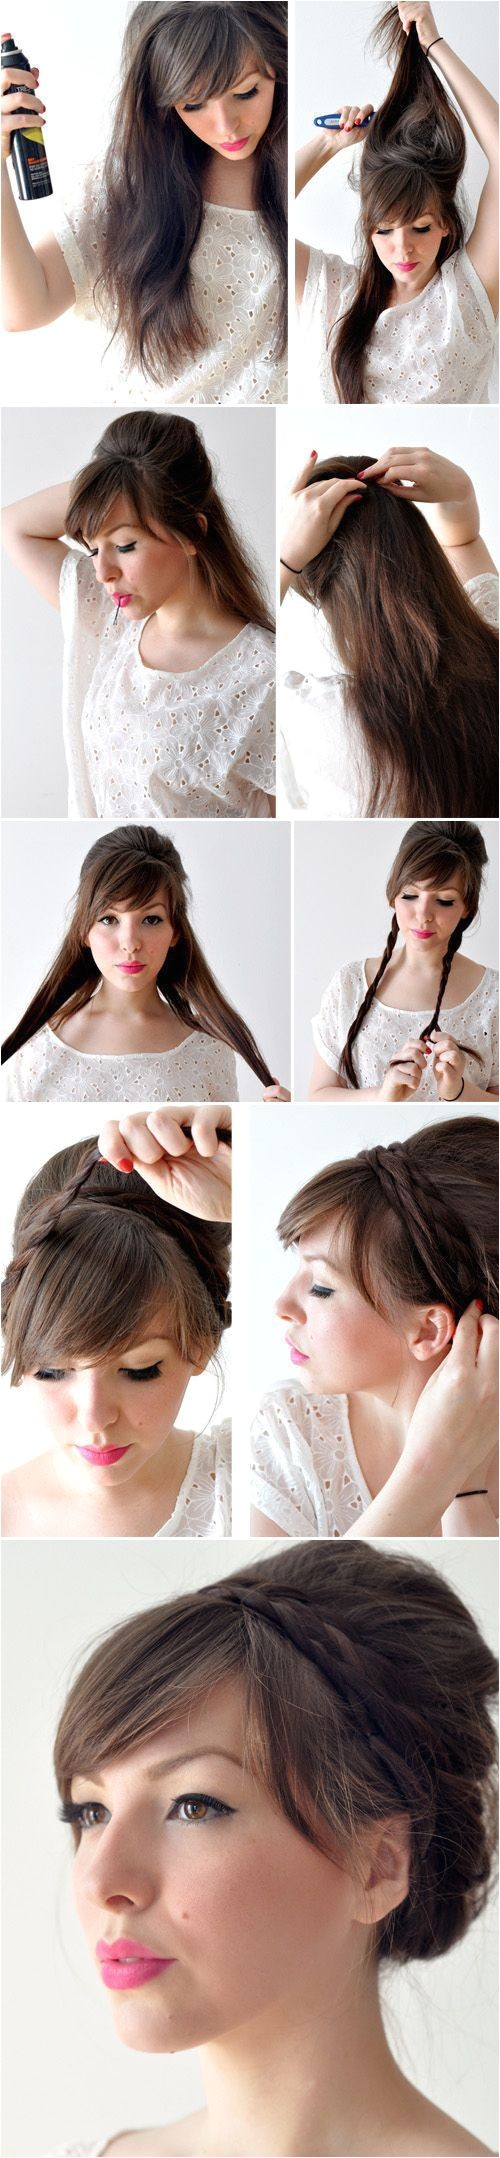 Hairstyles Easy to Make at Home Creative Hairstyles that You Can Easily Do at Home 27